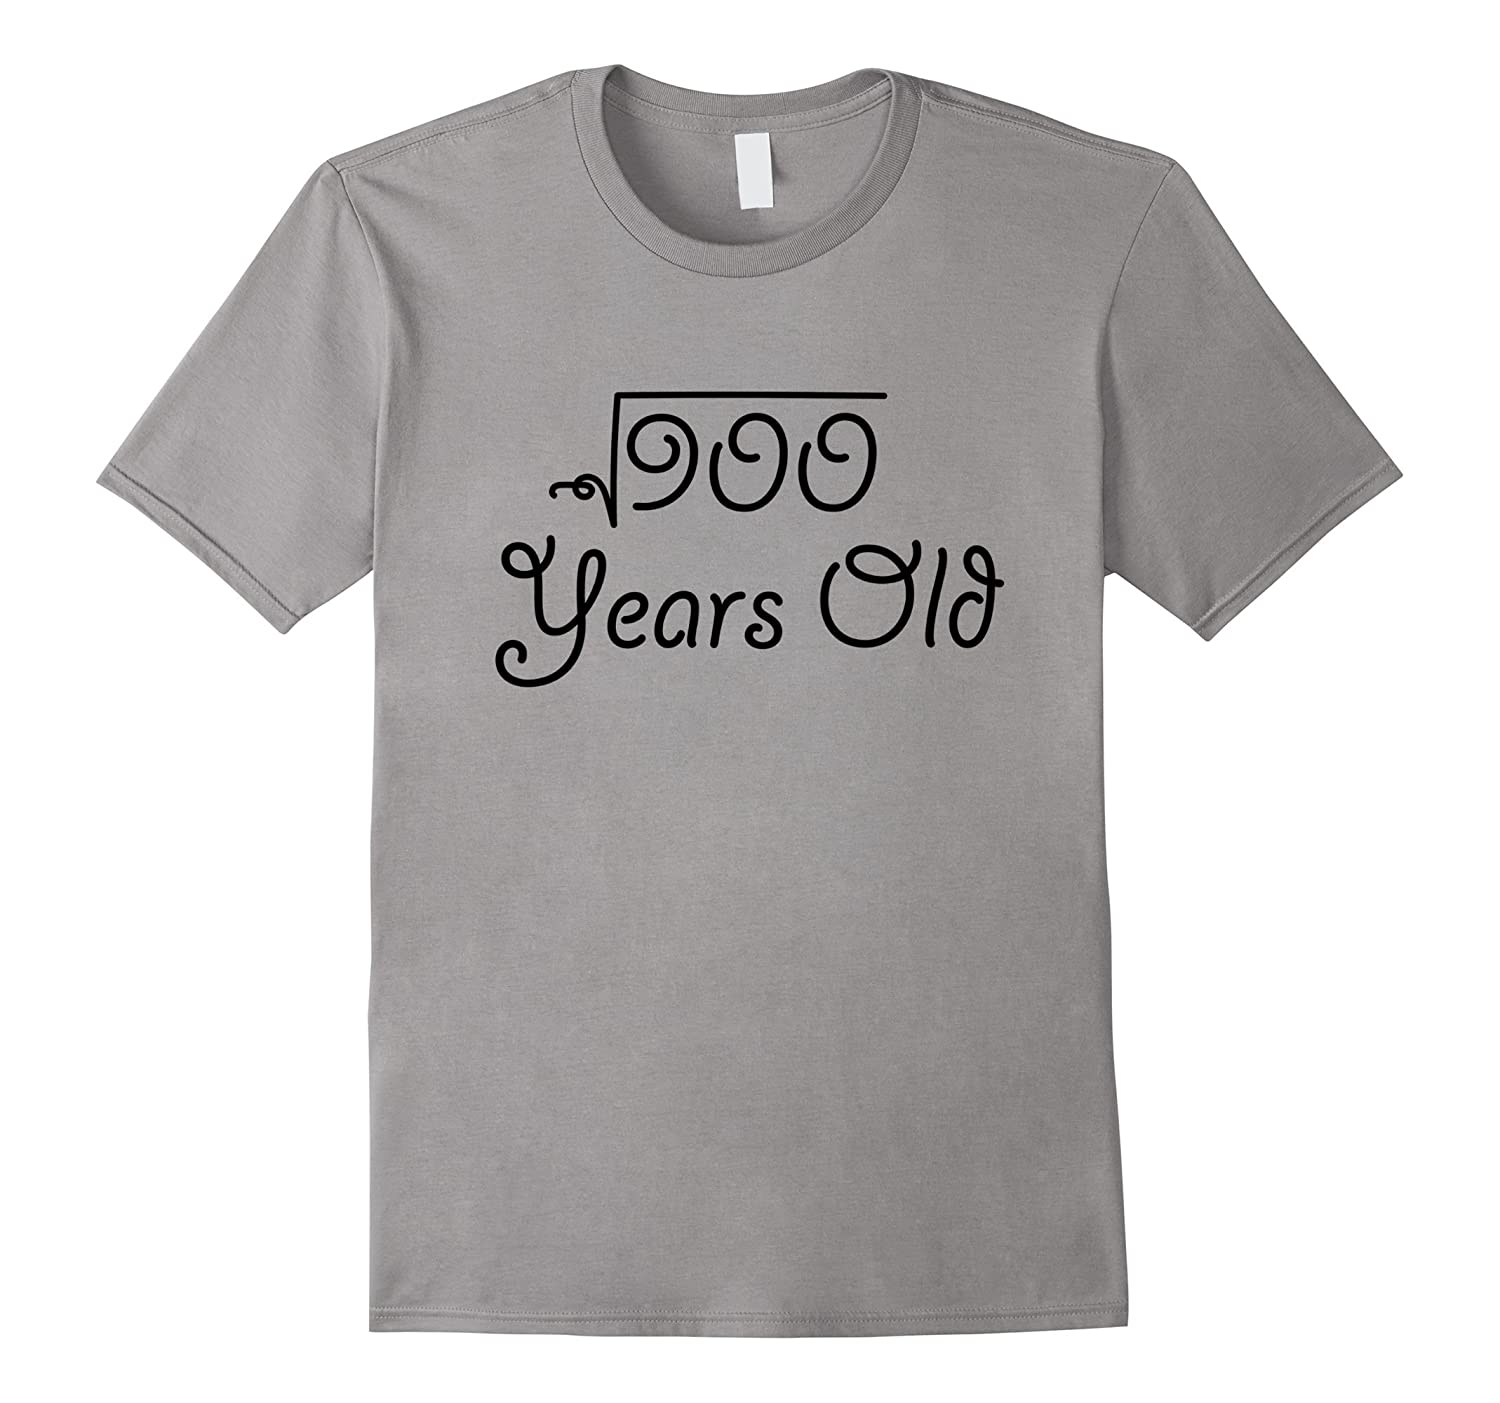 Square Root Of 900 Years Old Shirt